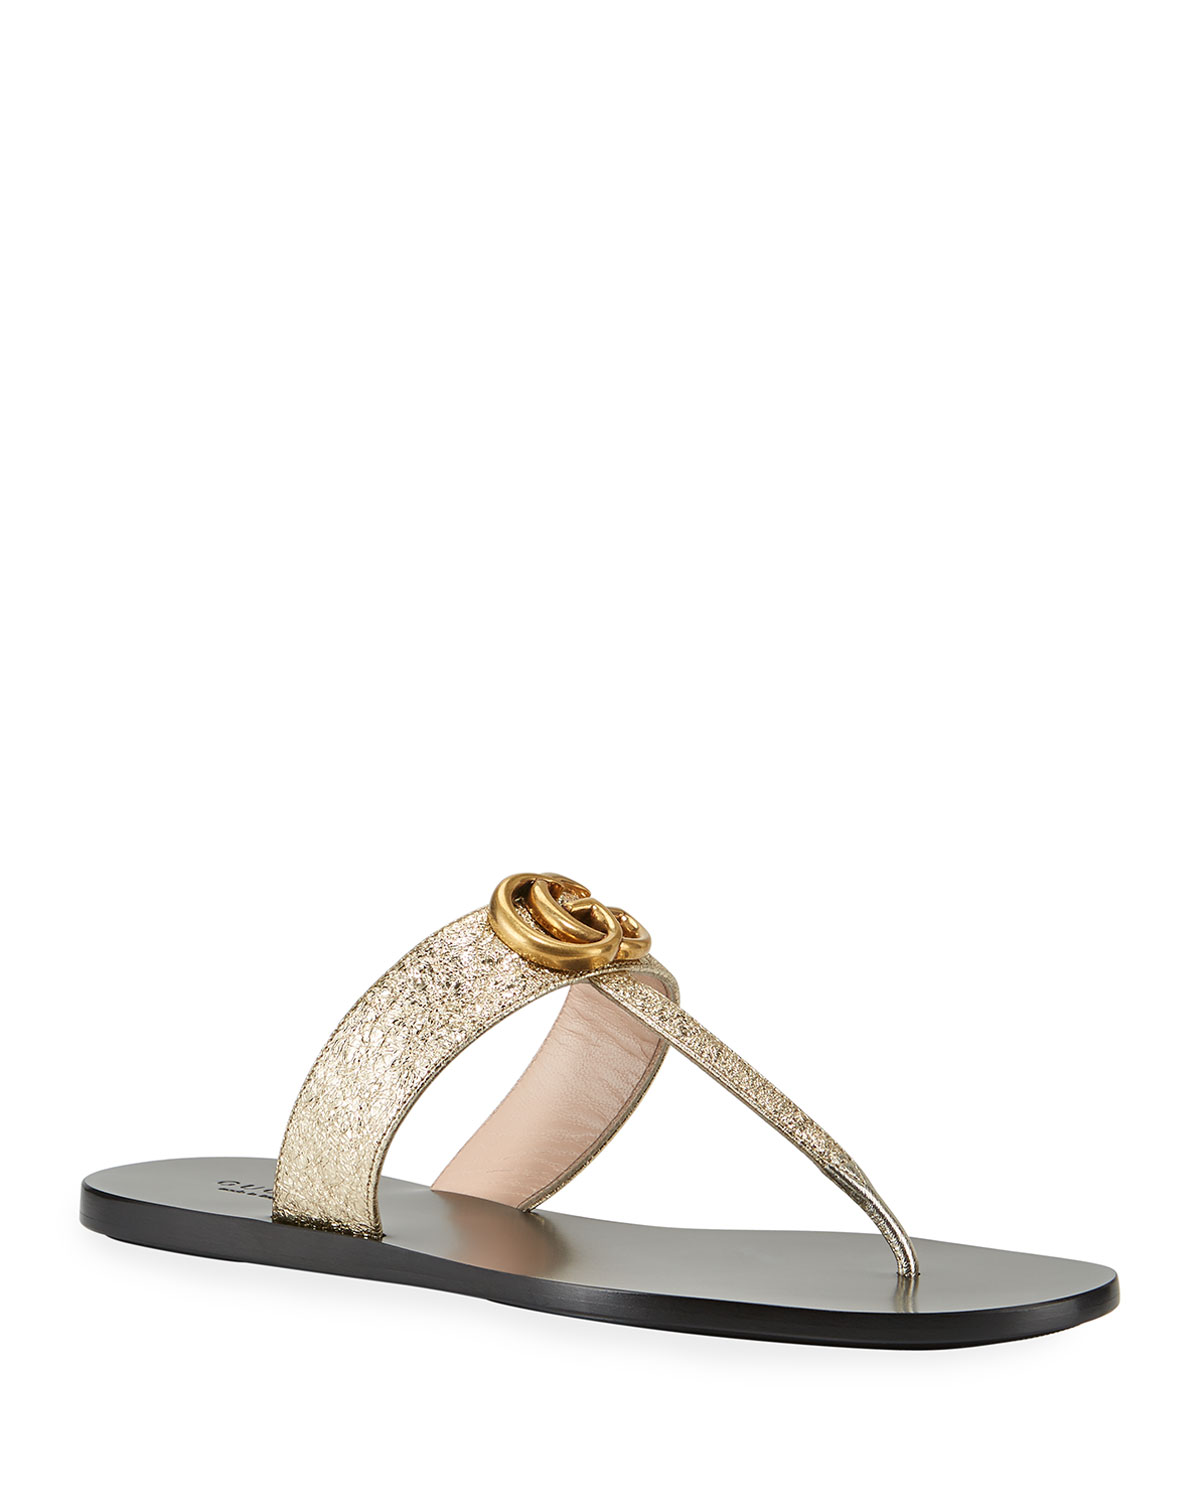 2f999c269 Gucci Flat Marmont Metallic Leather Thong | Neiman Marcus